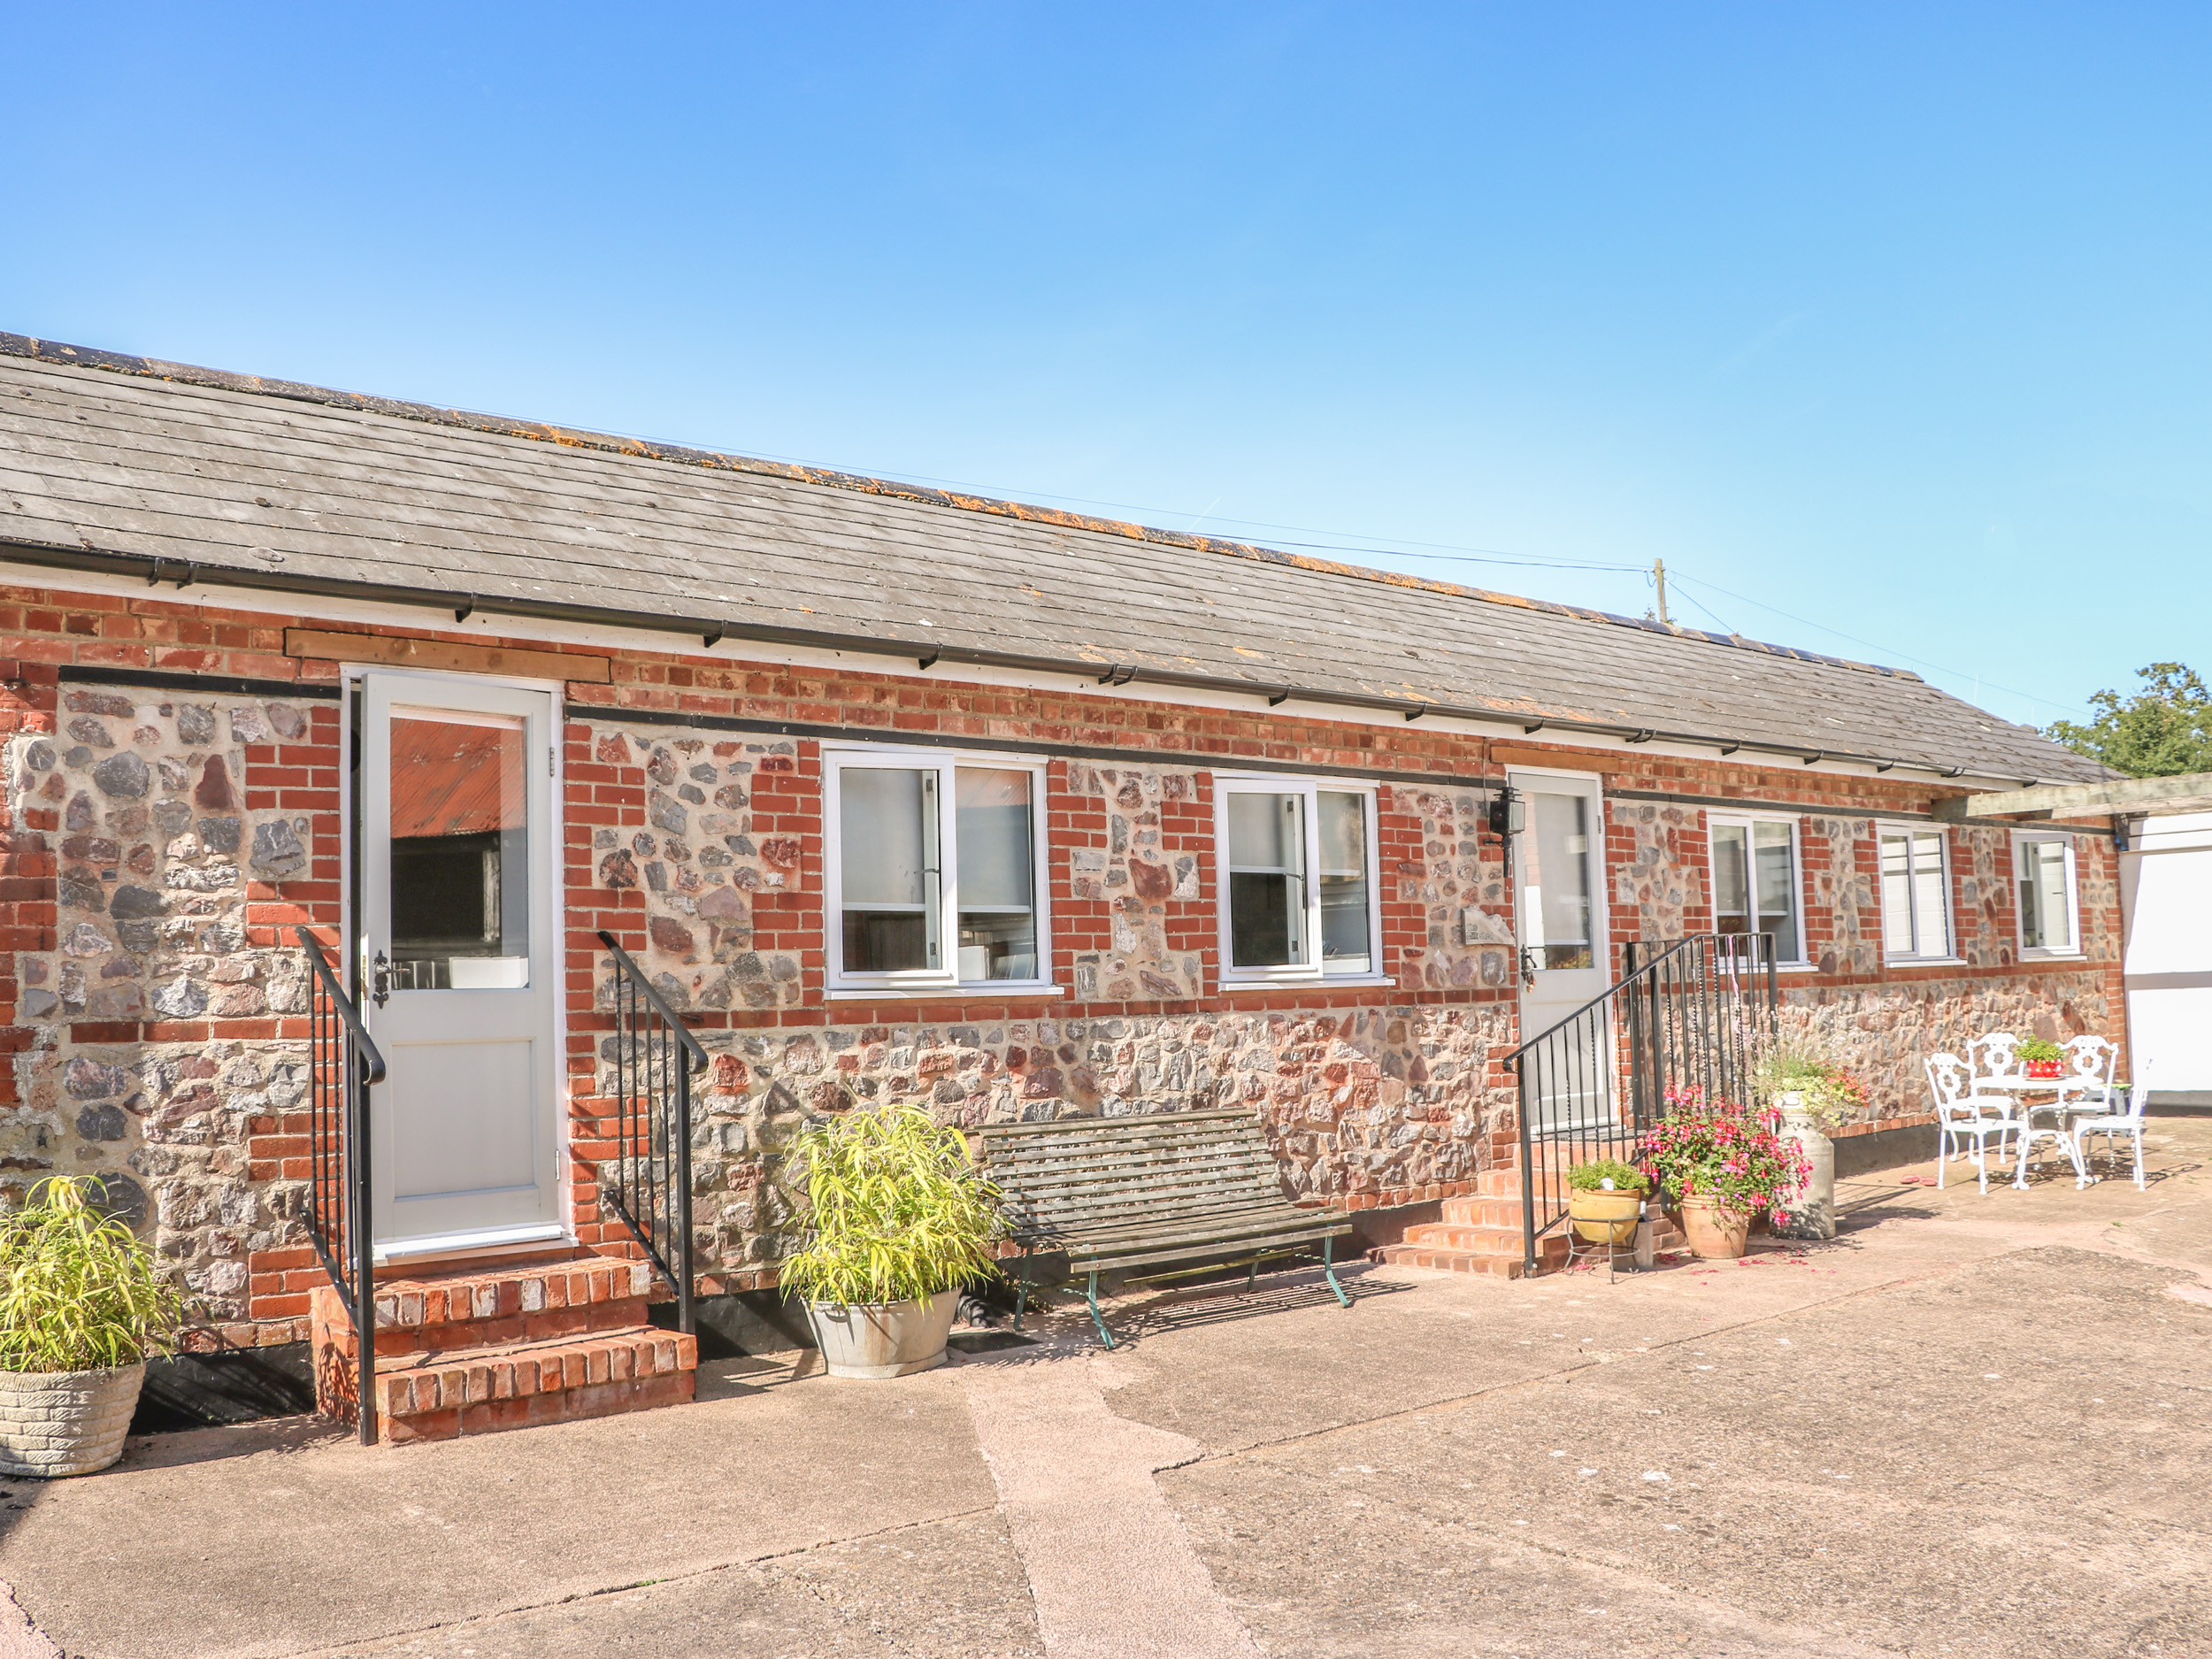 2 bedroom Cottage for rent in Cullompton